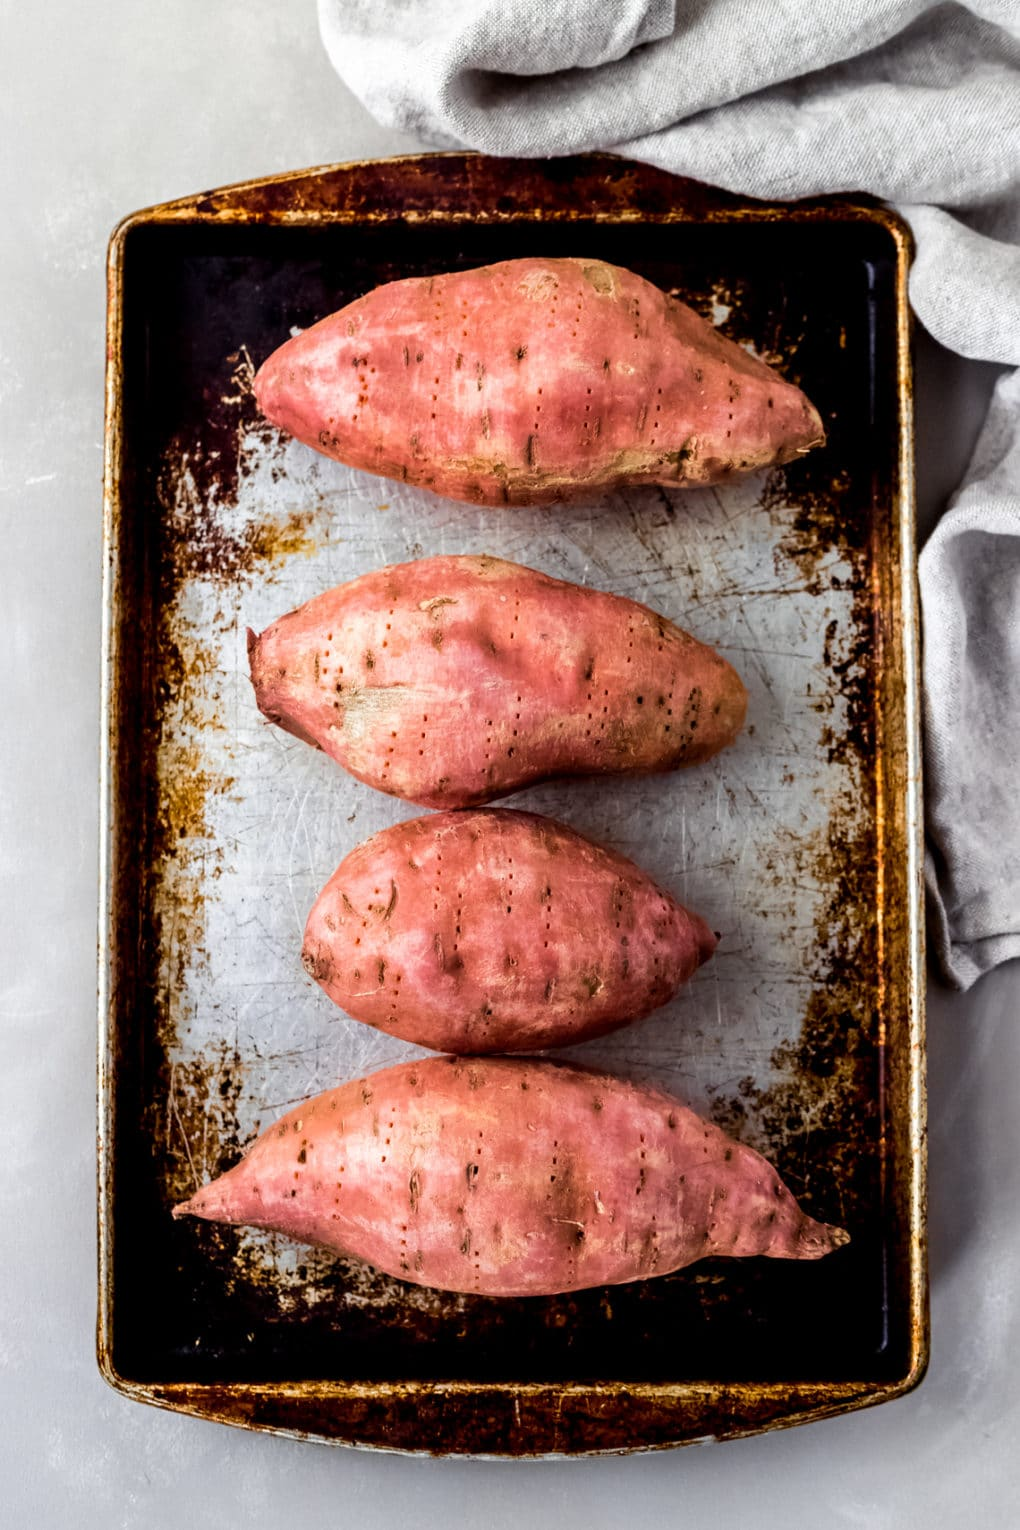 four unbaked sweet potatoes on a baking sheet